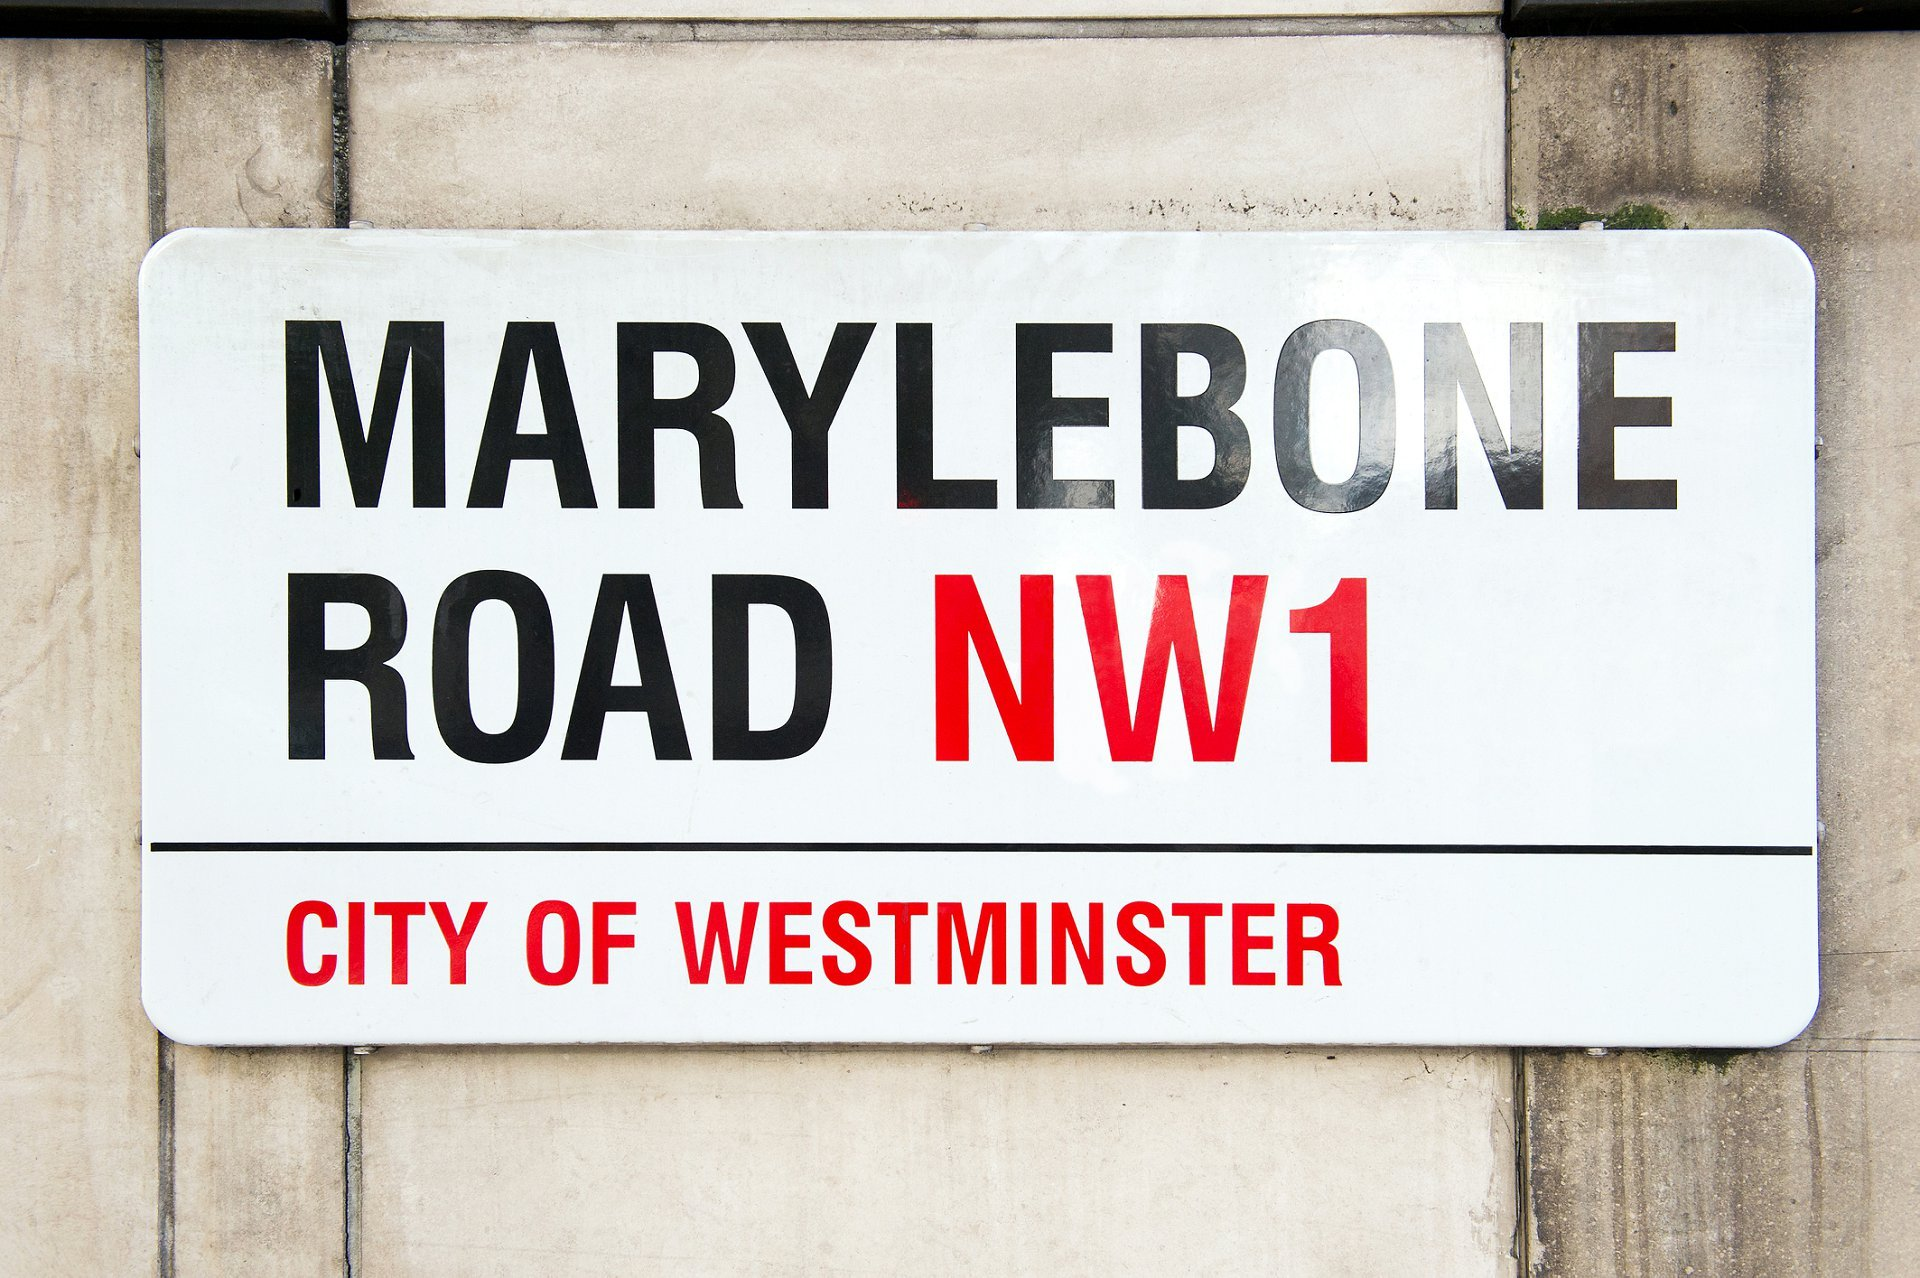 Marylebone Road street sign near Old Marylebone Town Hall, central London wedding venue with wedding photography by Emma Duggan